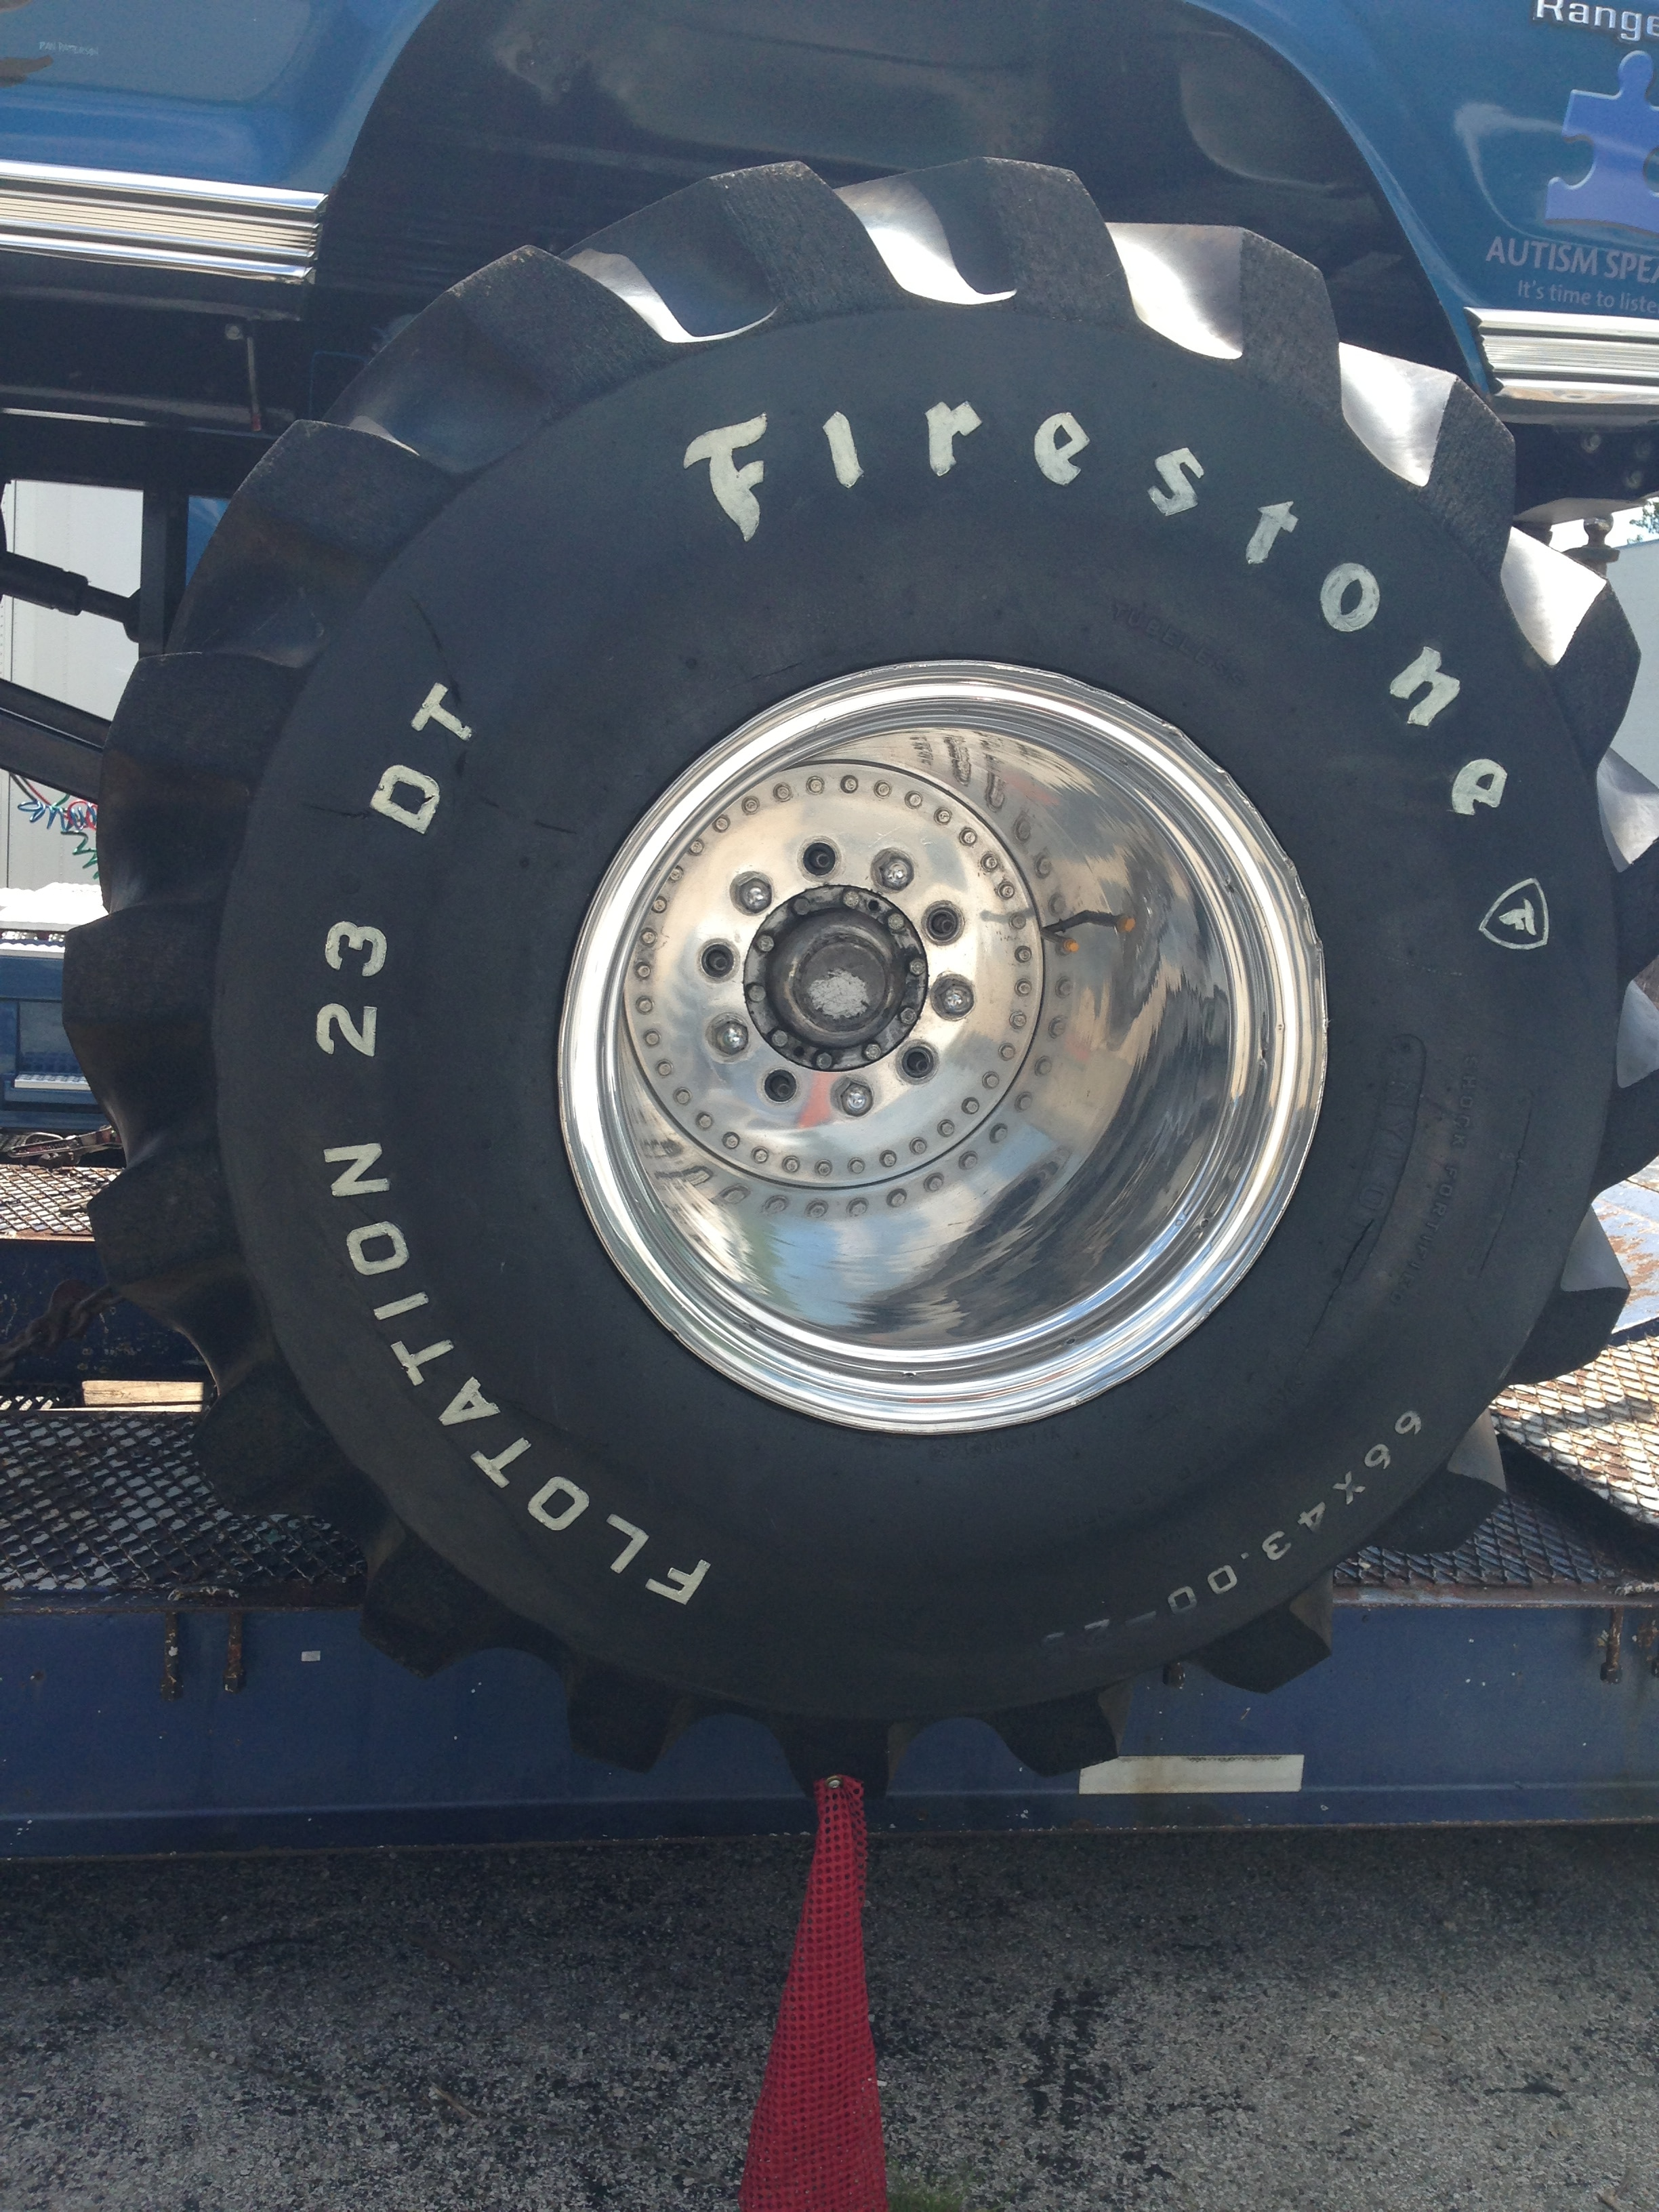 Ultimate Adventure 2014 Day 7 Road Day  33  Bigfoot Monster Truck Firestone Tire.JPG